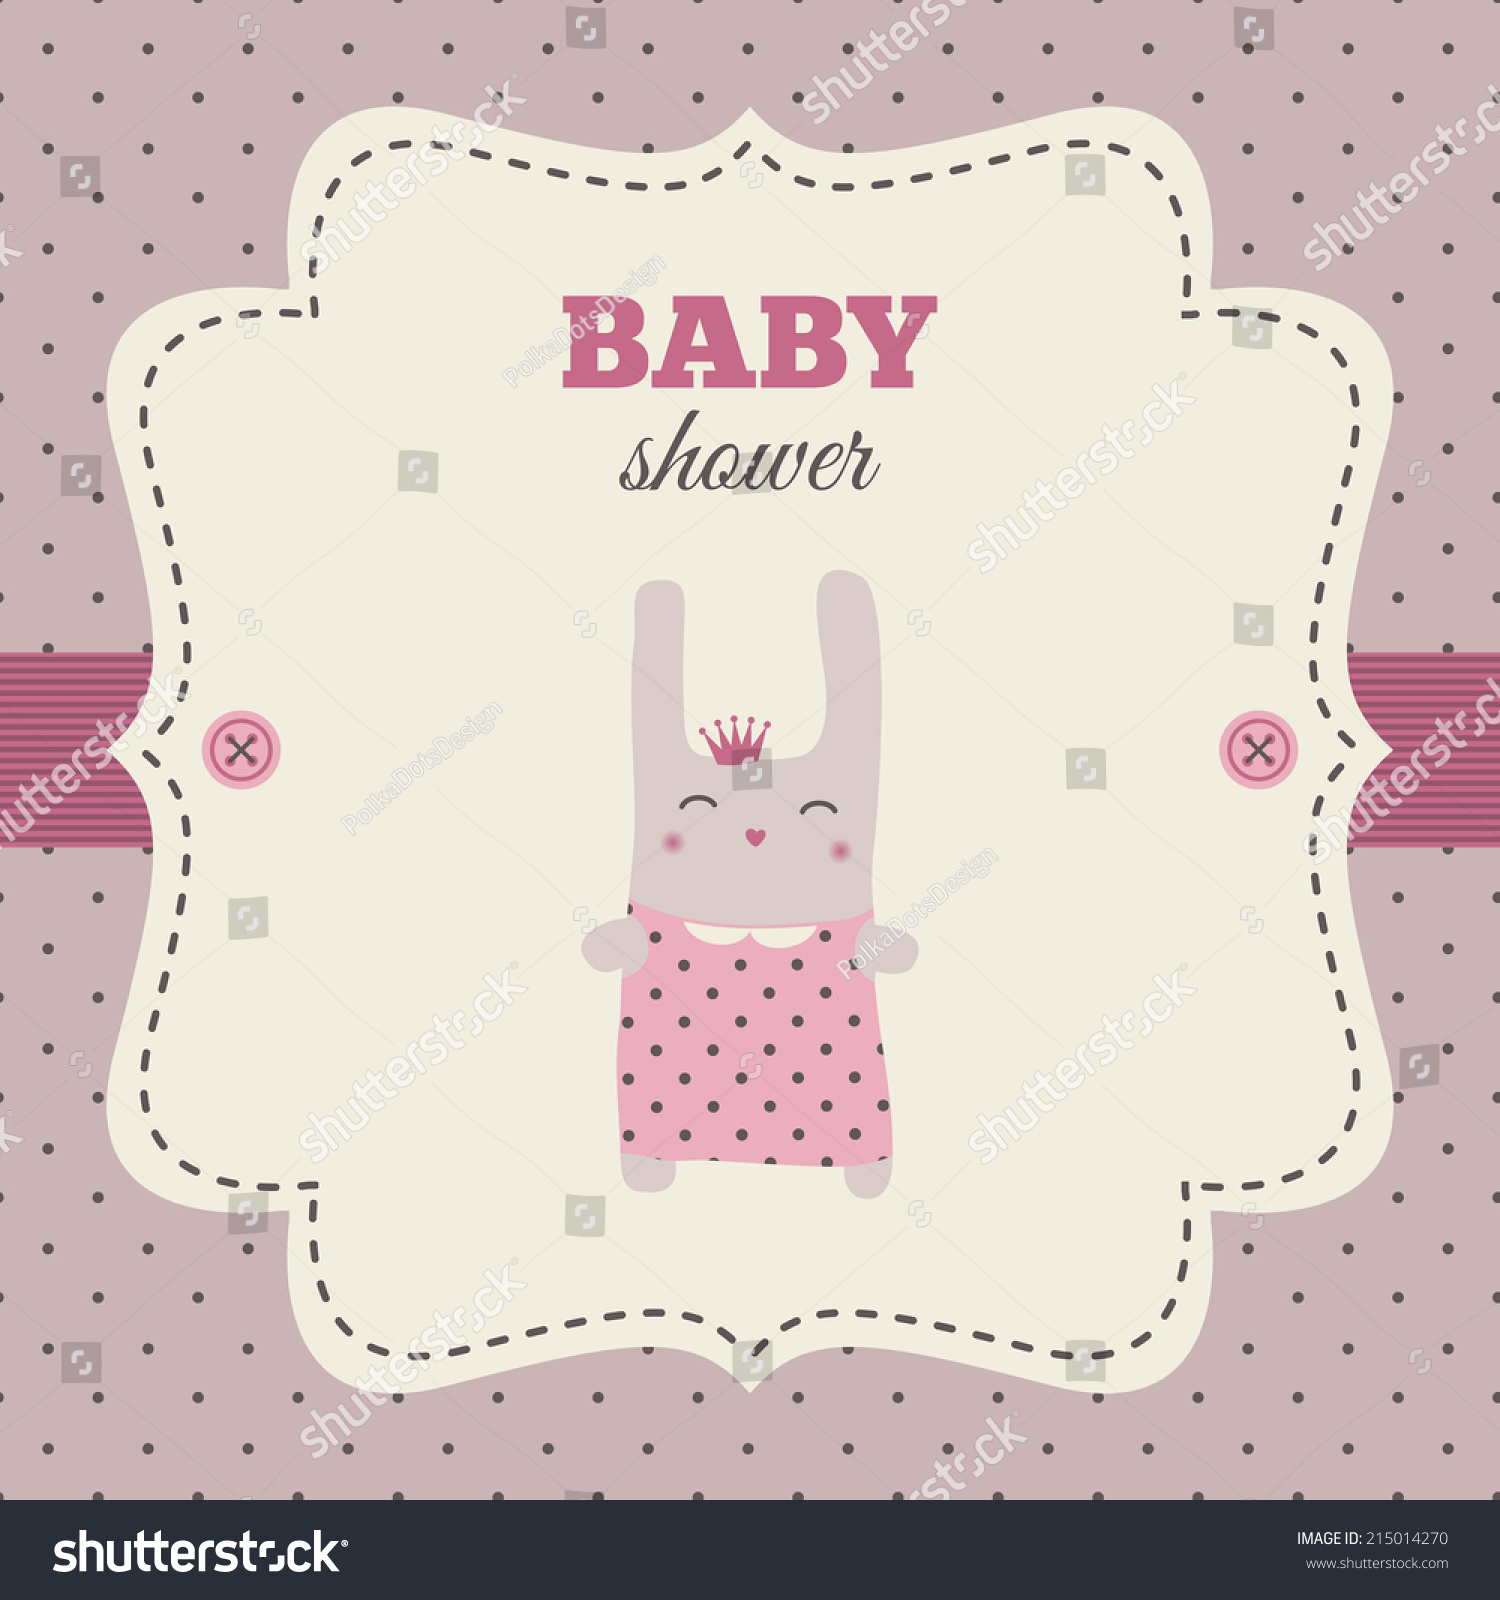 Baby Shower Invitation Pink Cream Colors Stock Vector 215014270 ...